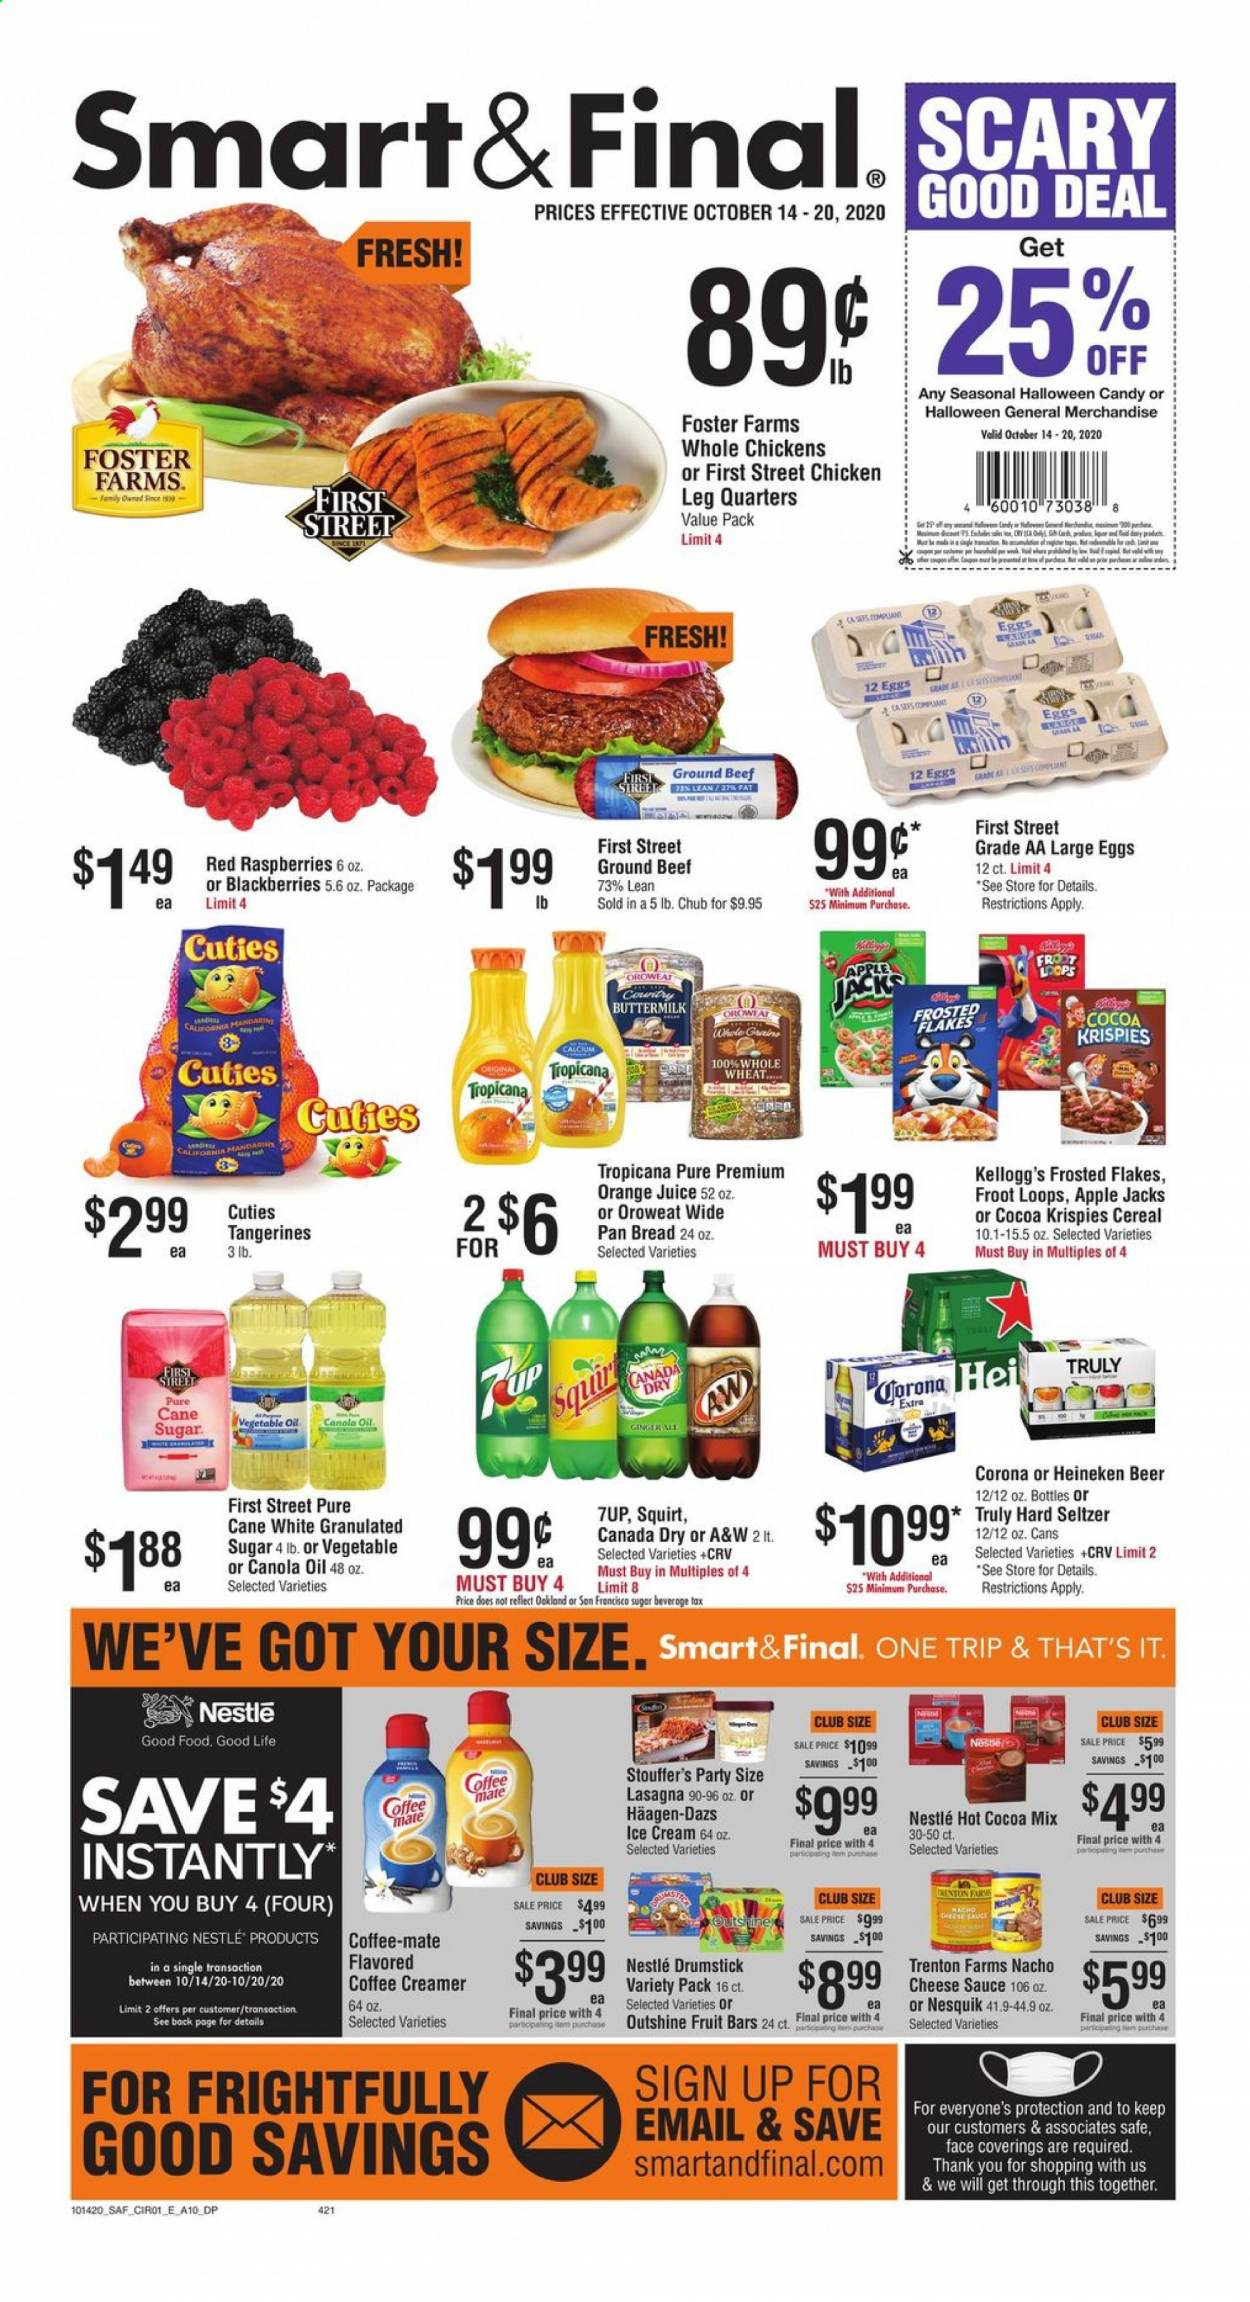 Smart & Final Flyer - 10.14.2020 - 10.20.2020 - Sales products - apples, beef meat, beer, blackberries, bread, buttermilk, calcium, Canada Dry, canola oil, cereals, cocoa, Coffee-Mate, eggs, granulated sugar, ground beef, Nestlé, raspberries, seltzer, sugar, tangerines, vegetable oil, ice cream, chicken, pan, orange juice, orange, cheese, juice, candy, creamer, cane sugar, coffee creamer, sauce, flakes, Fruit, corona, Heineken, Apple, vegetable. Page 1.